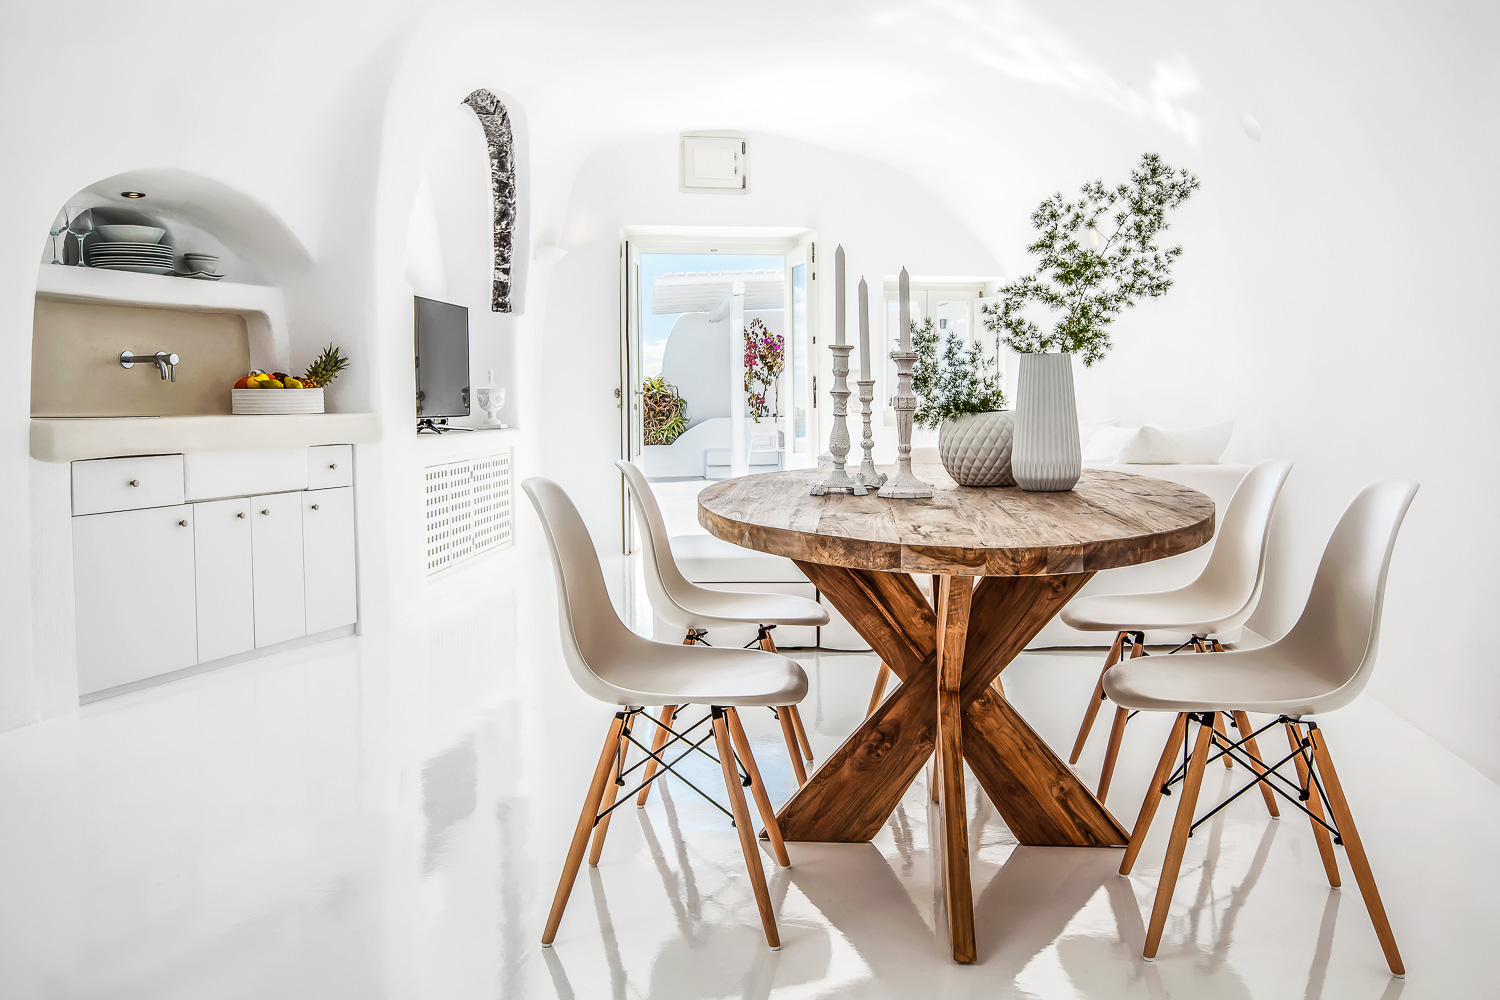 Greek island dining room with rustic wooden table and modern chairs.